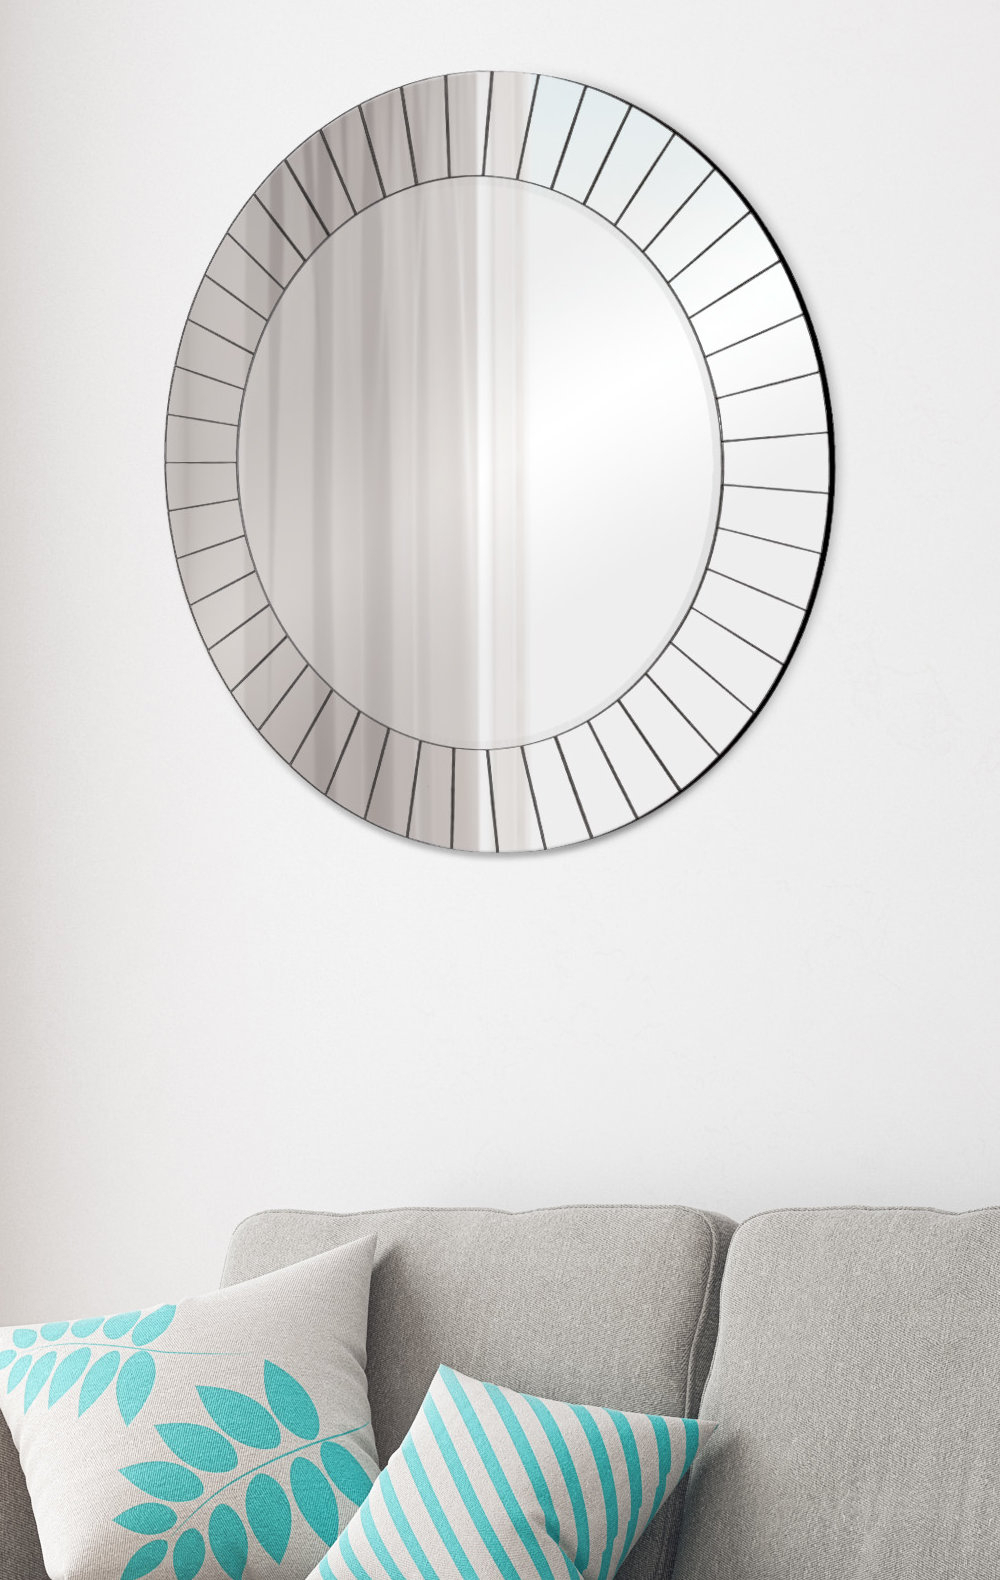 Lidya Frameless Beveled Wall Mirrors Intended For Widely Used Henriette Frameless Accent Mirror (Gallery 4 of 20)